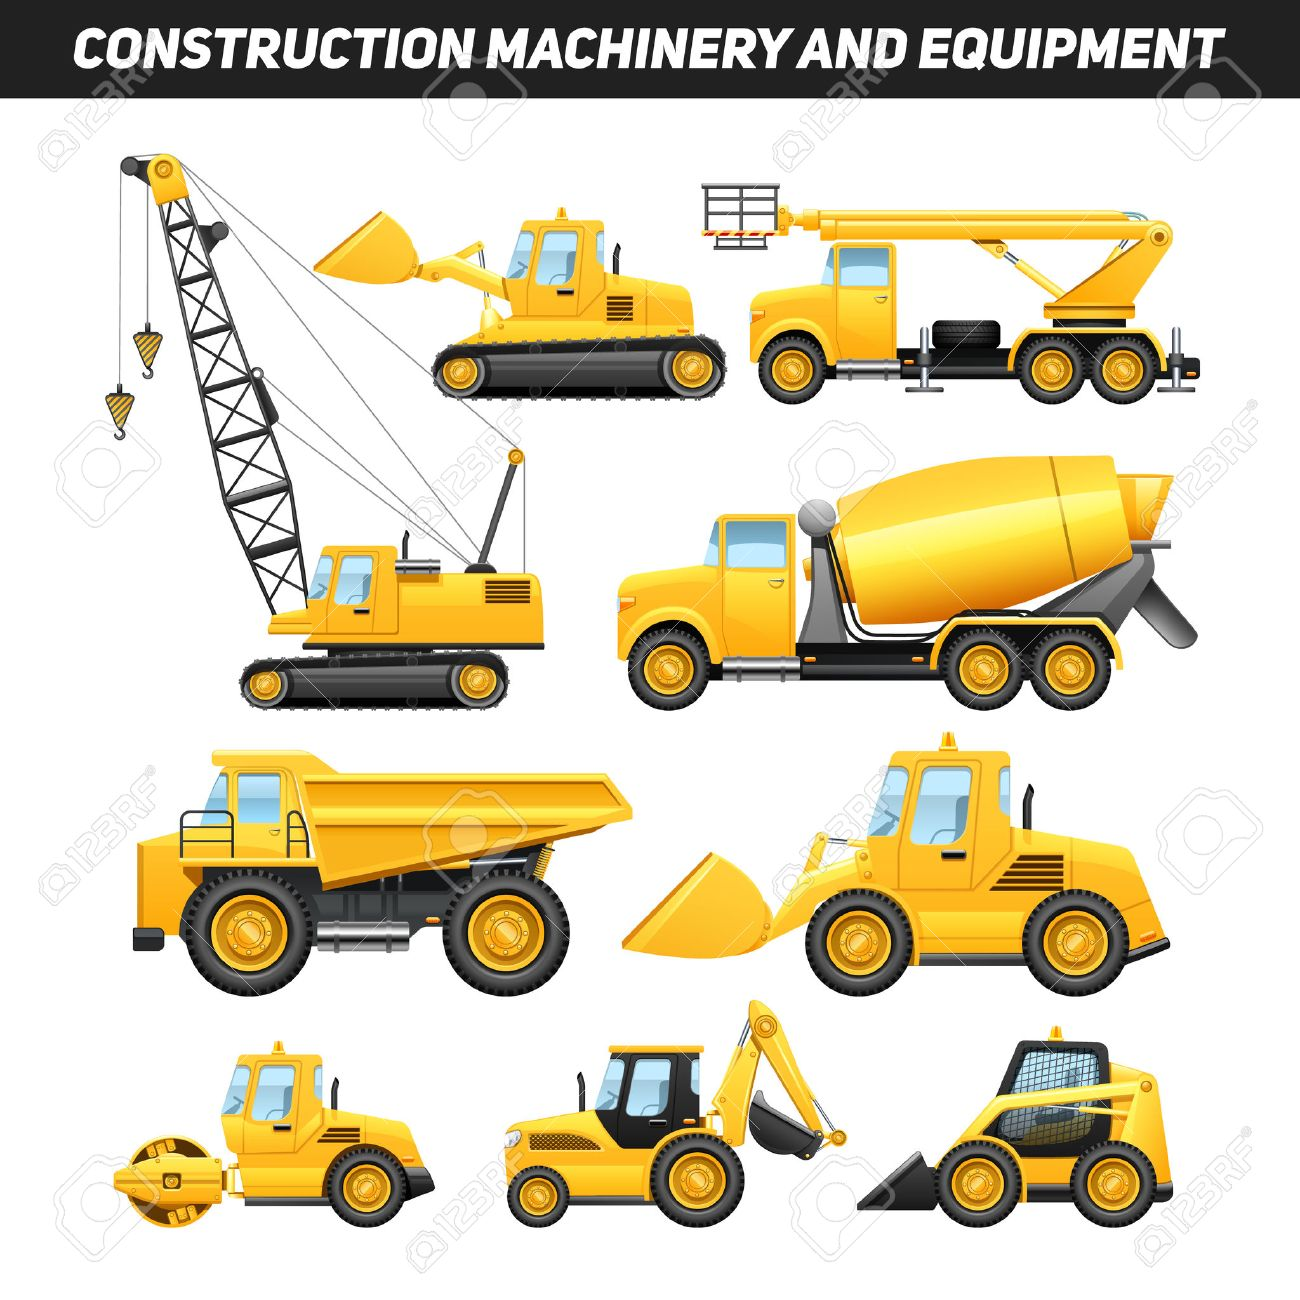 Construction equipment and machinery with trucks crane and bulldozer flat icons set bright yellow abstract isolated vector illustration - 51138641